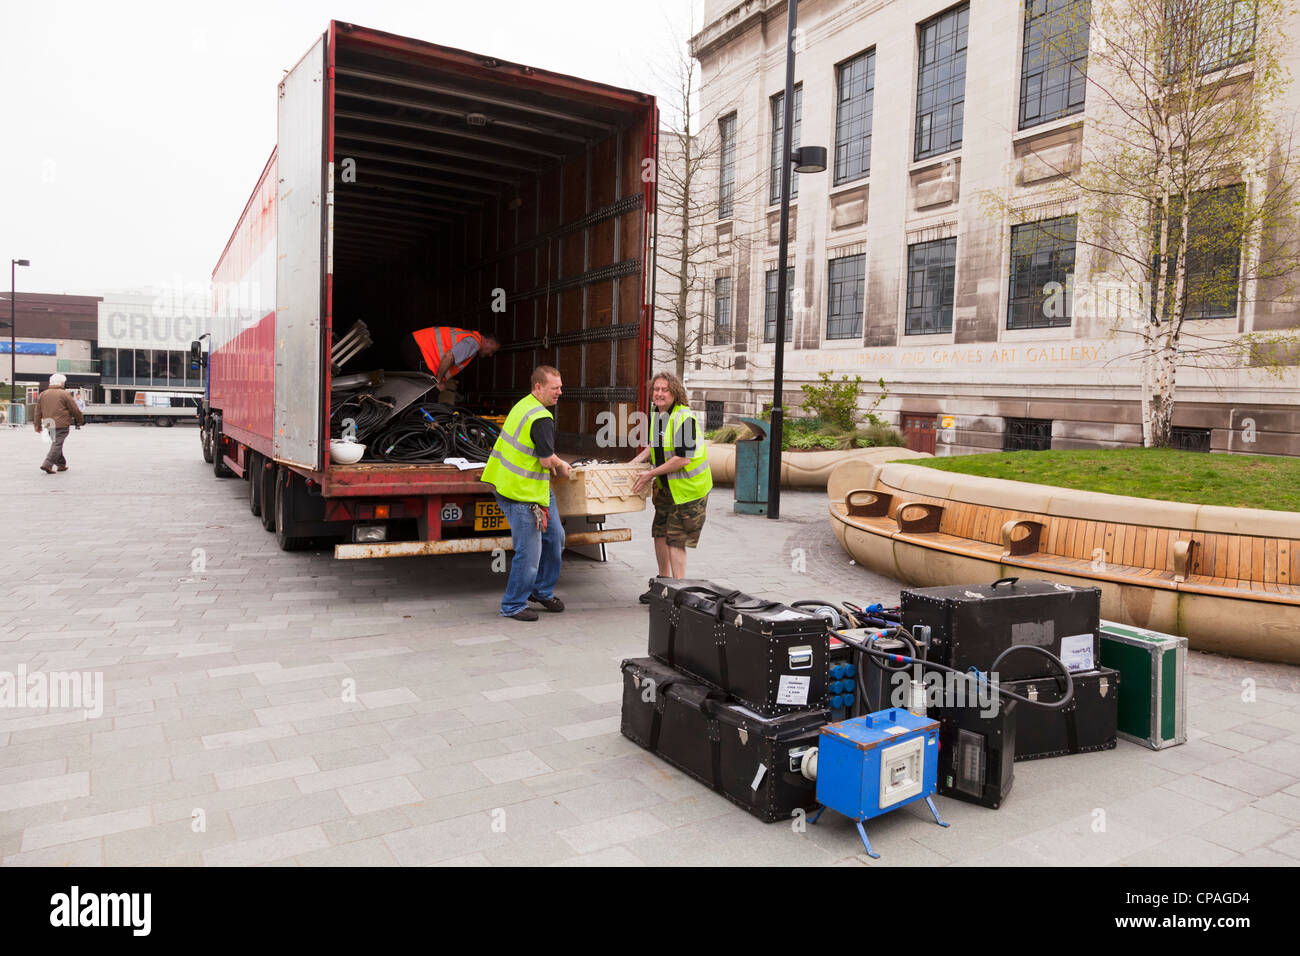 Workmen unloading sound and video equipment from a large lorry near the Central Library, Sheffield, South Yorkshire, - Stock Image